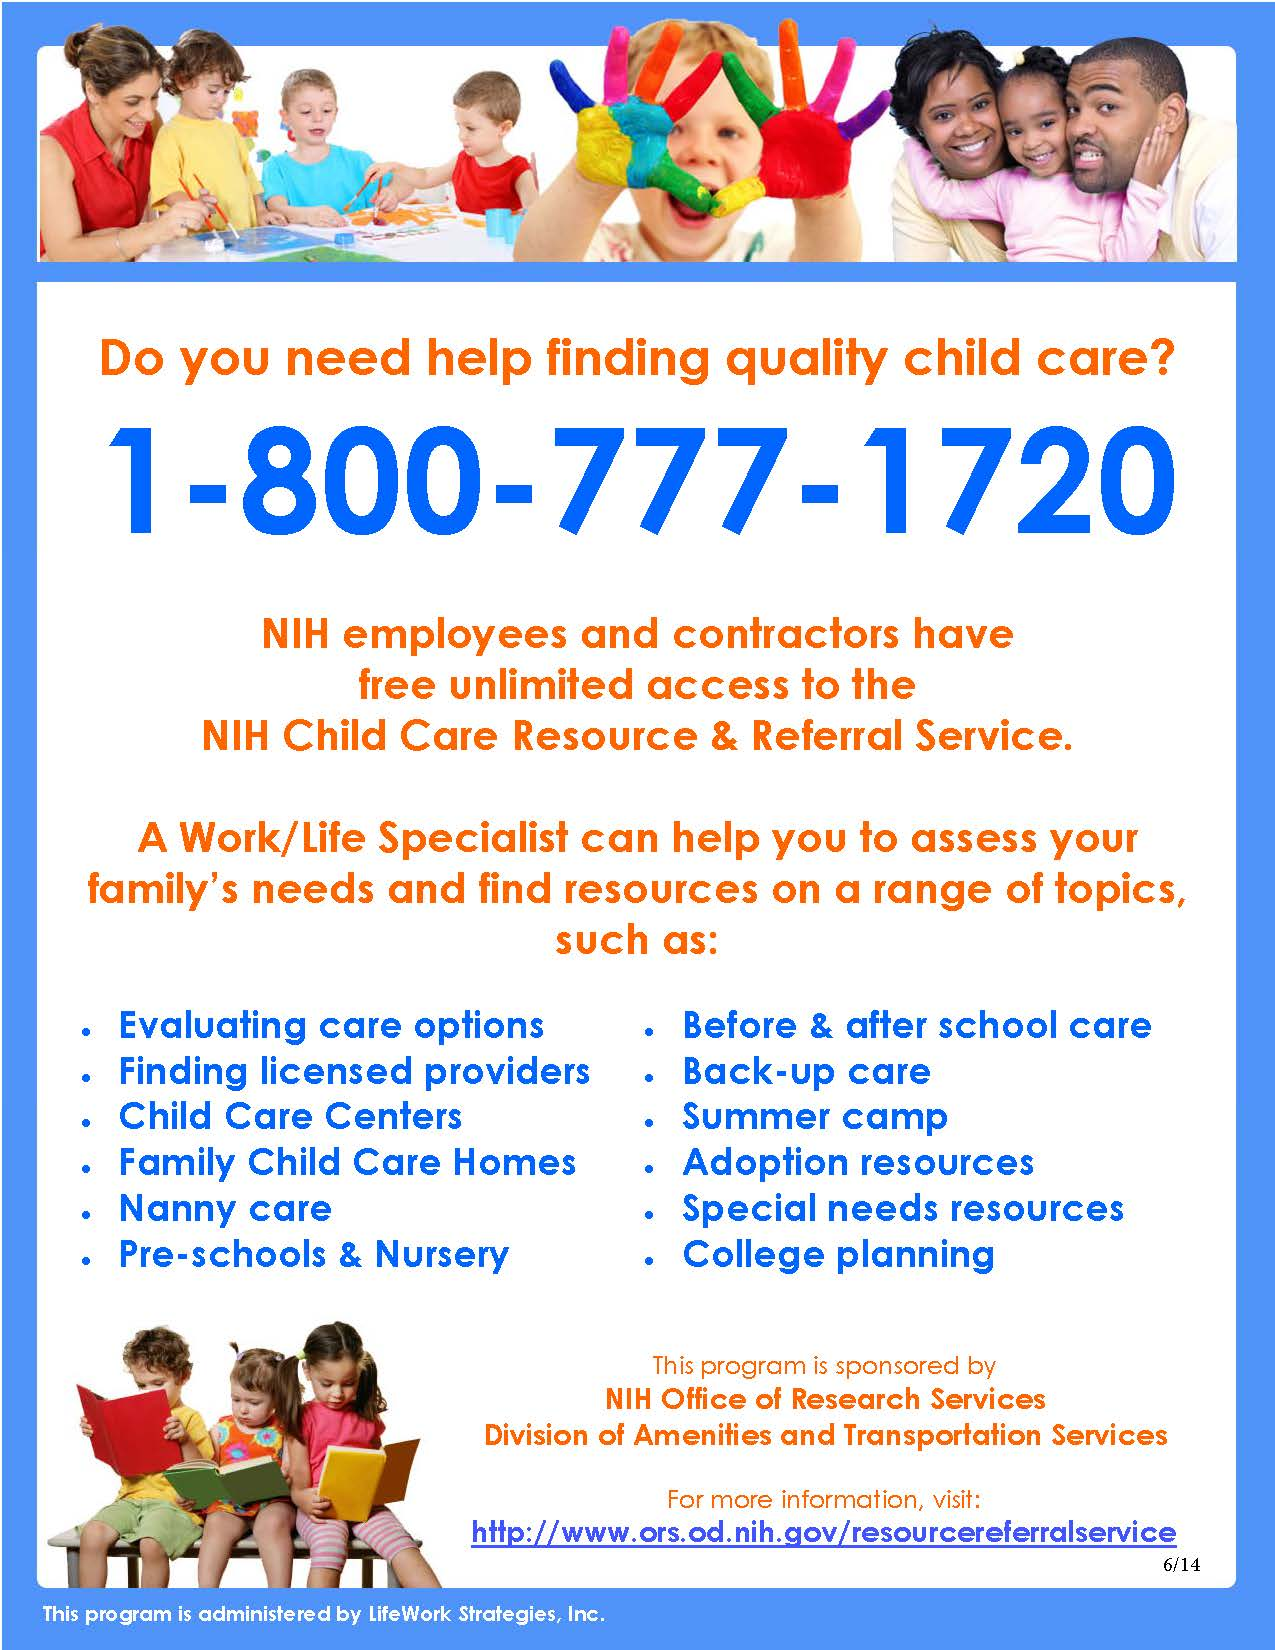 NIH Child Care Resource and Referral Services